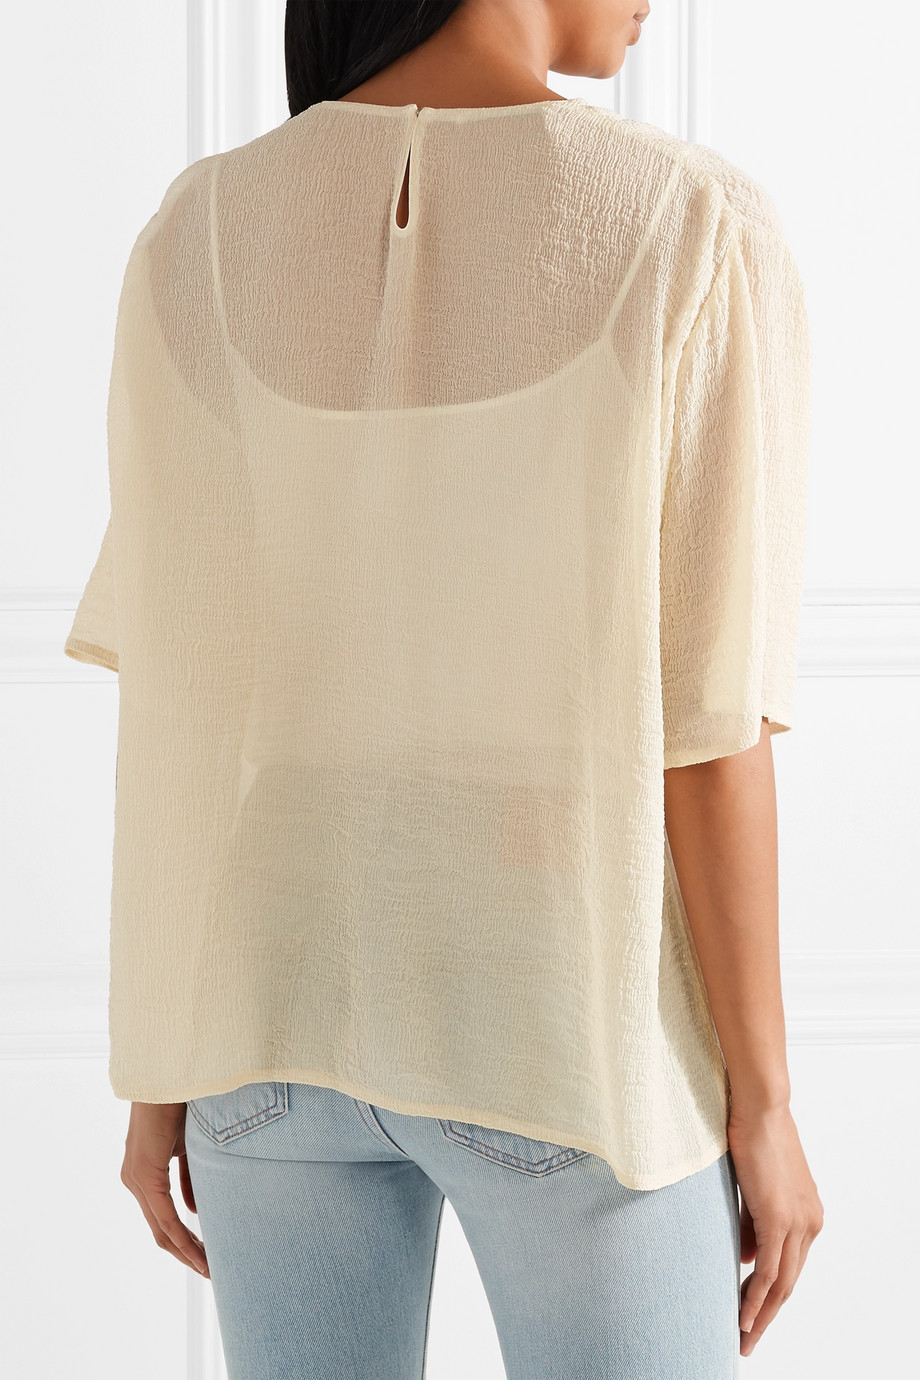 Silk blouse Mansur Gavriel buy Silk blouse Mansur Gavriel internet shop